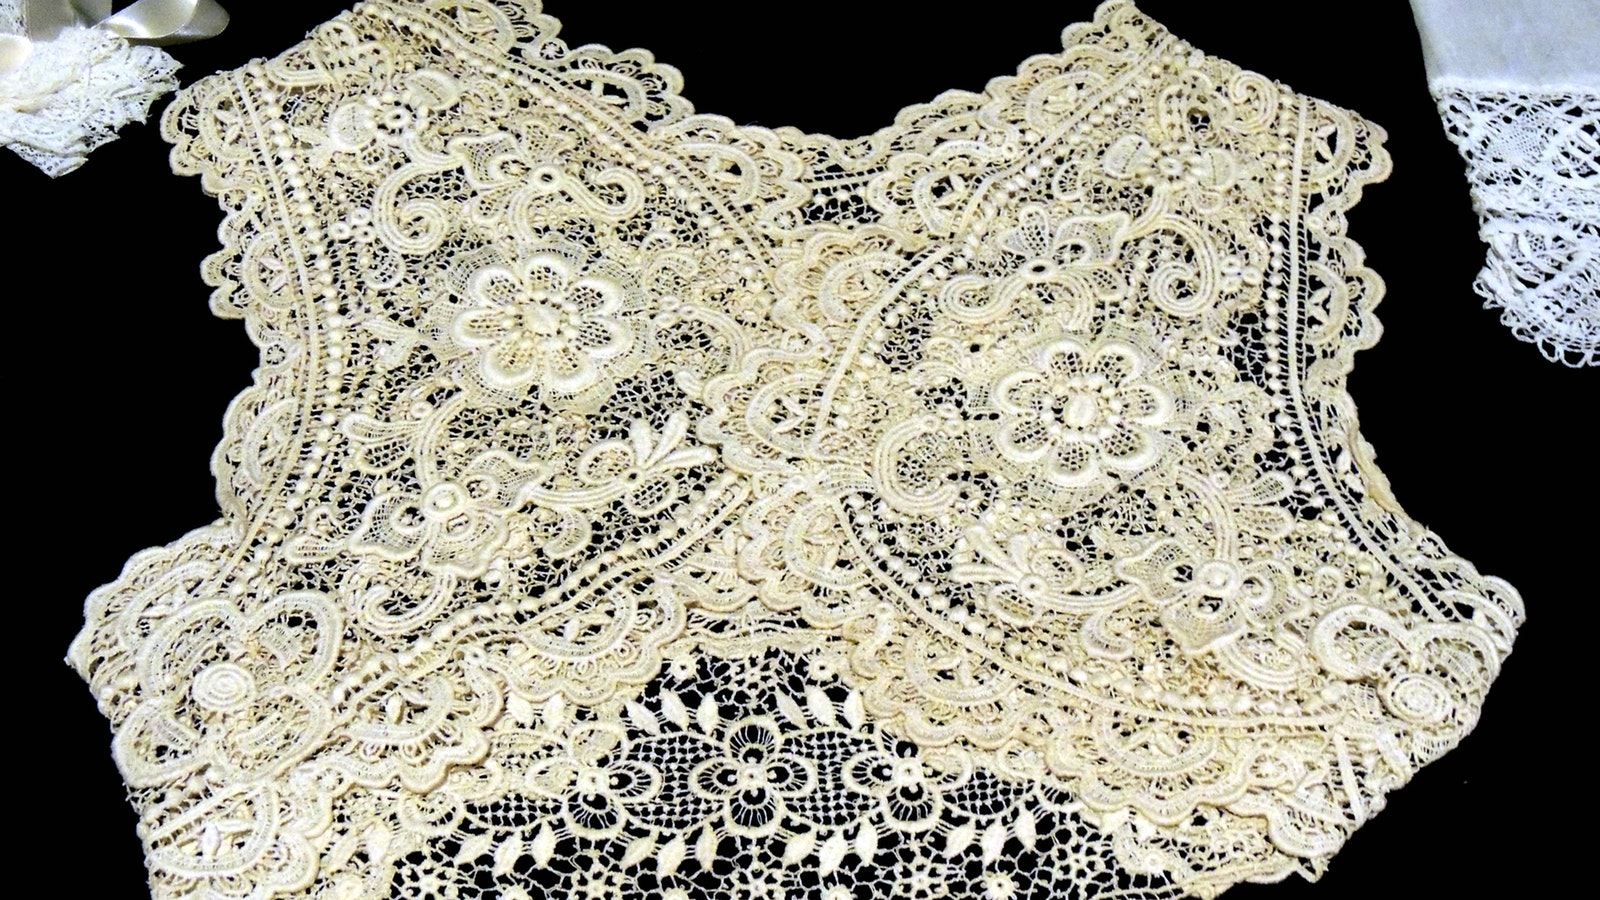 'Lovely in Lace' exhibition